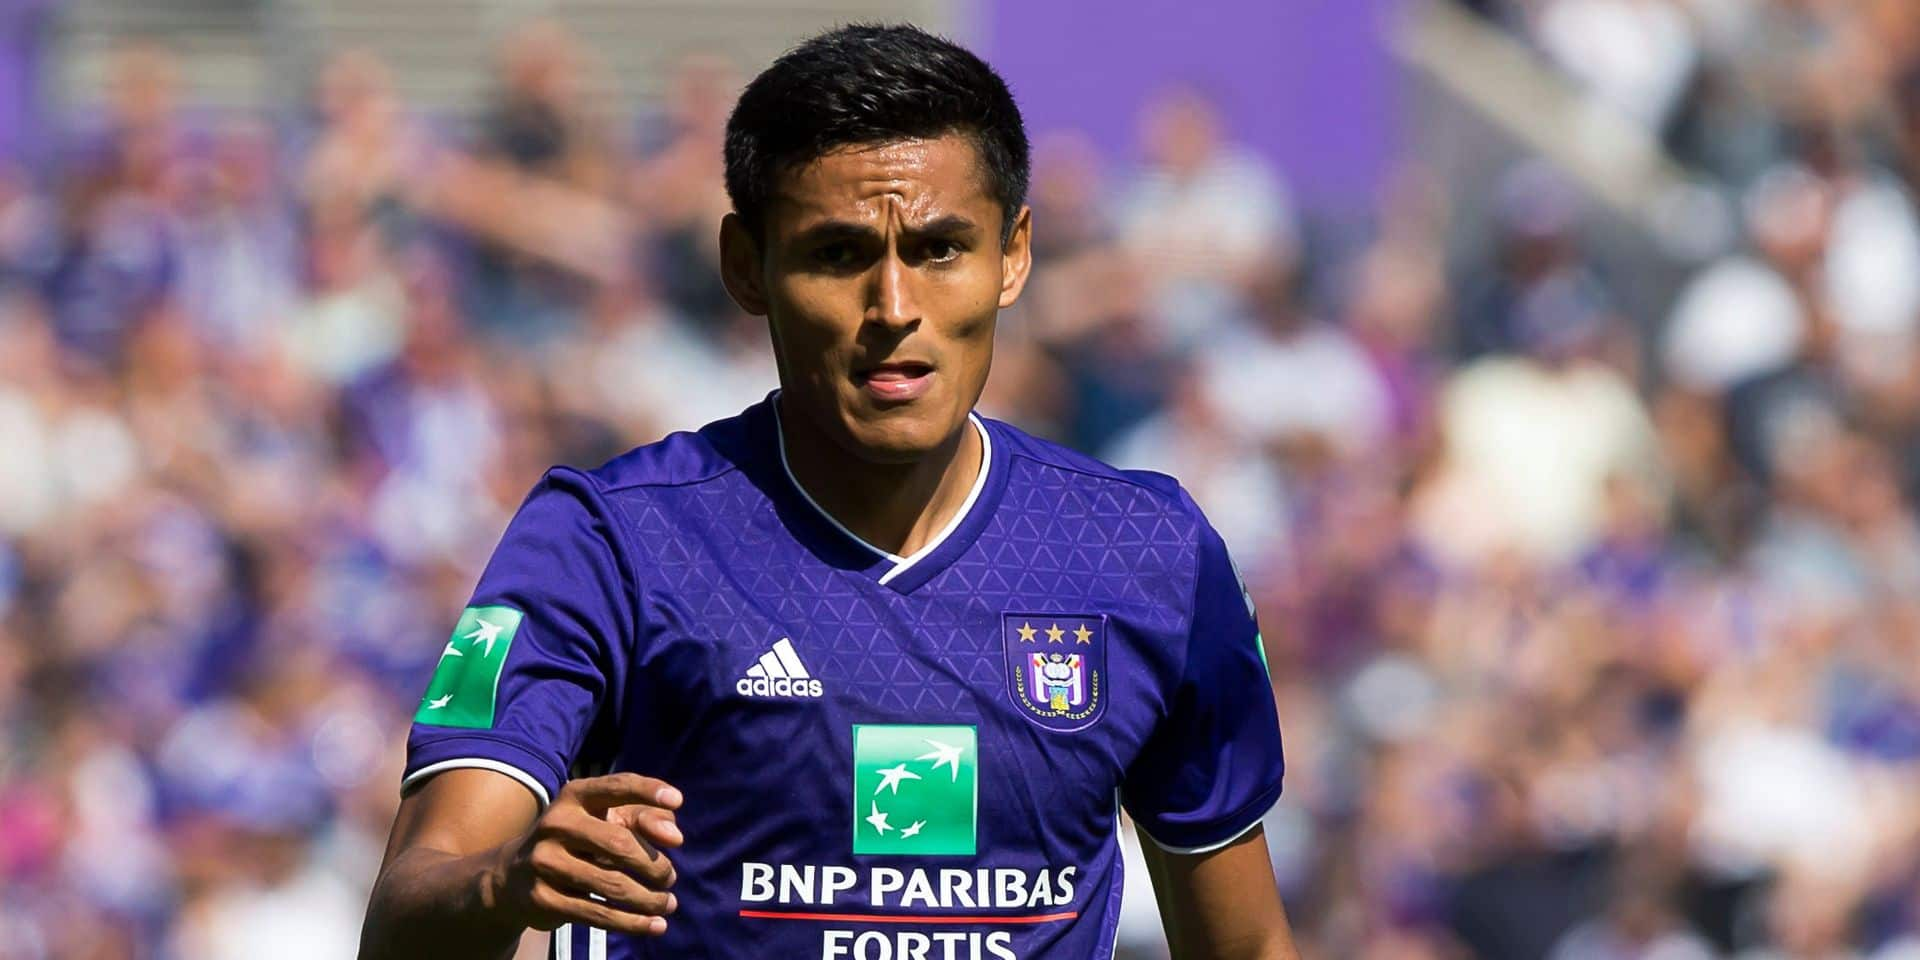 Anderlecht's Andy Najar pictured in action during the Jupiler Pro League match between RSC Anderlecht and Royal Antwerp FC, in Brussels, Sunday 02 September 2018, on the sixth day of the Jupiler Pro League, the Belgian soccer championship season 2018-2019. BELGA PHOTO KRISTOF VAN ACCOM